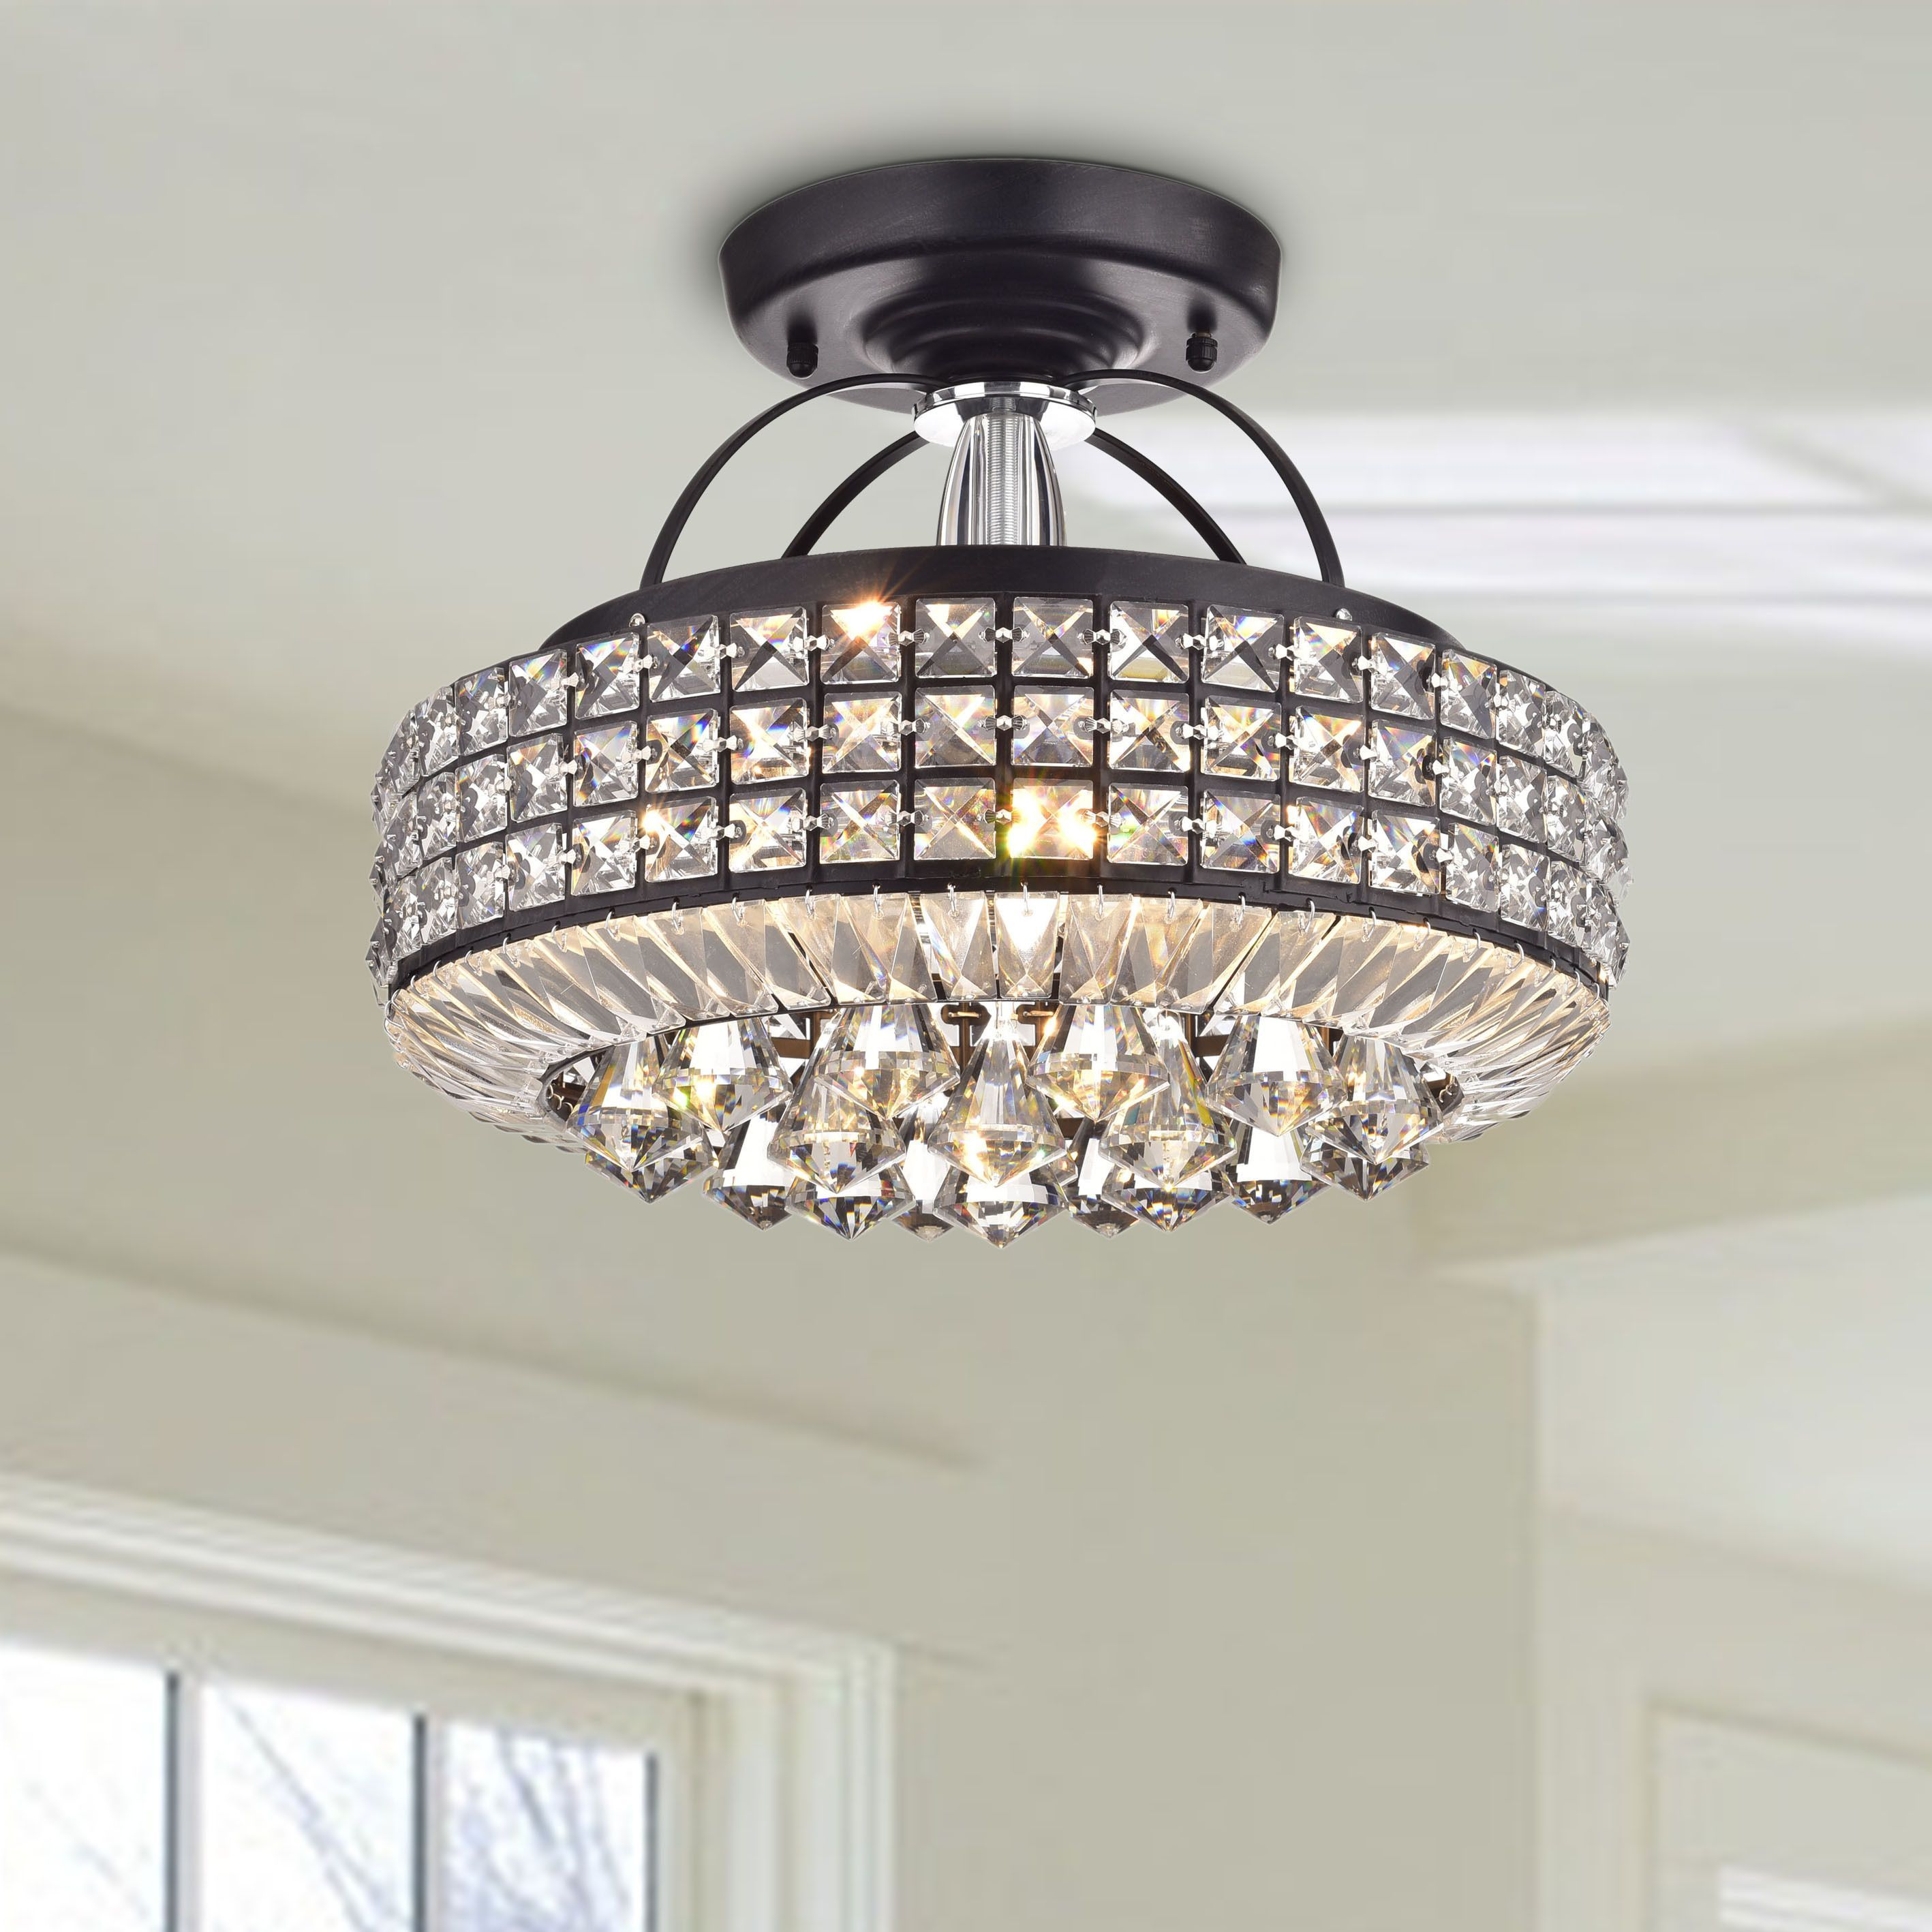 Light Up Your Home With This Jolie Antique Black Drum Shade Crystal Semi Flush Mount Chandelier 4 Is Made Of And Iron